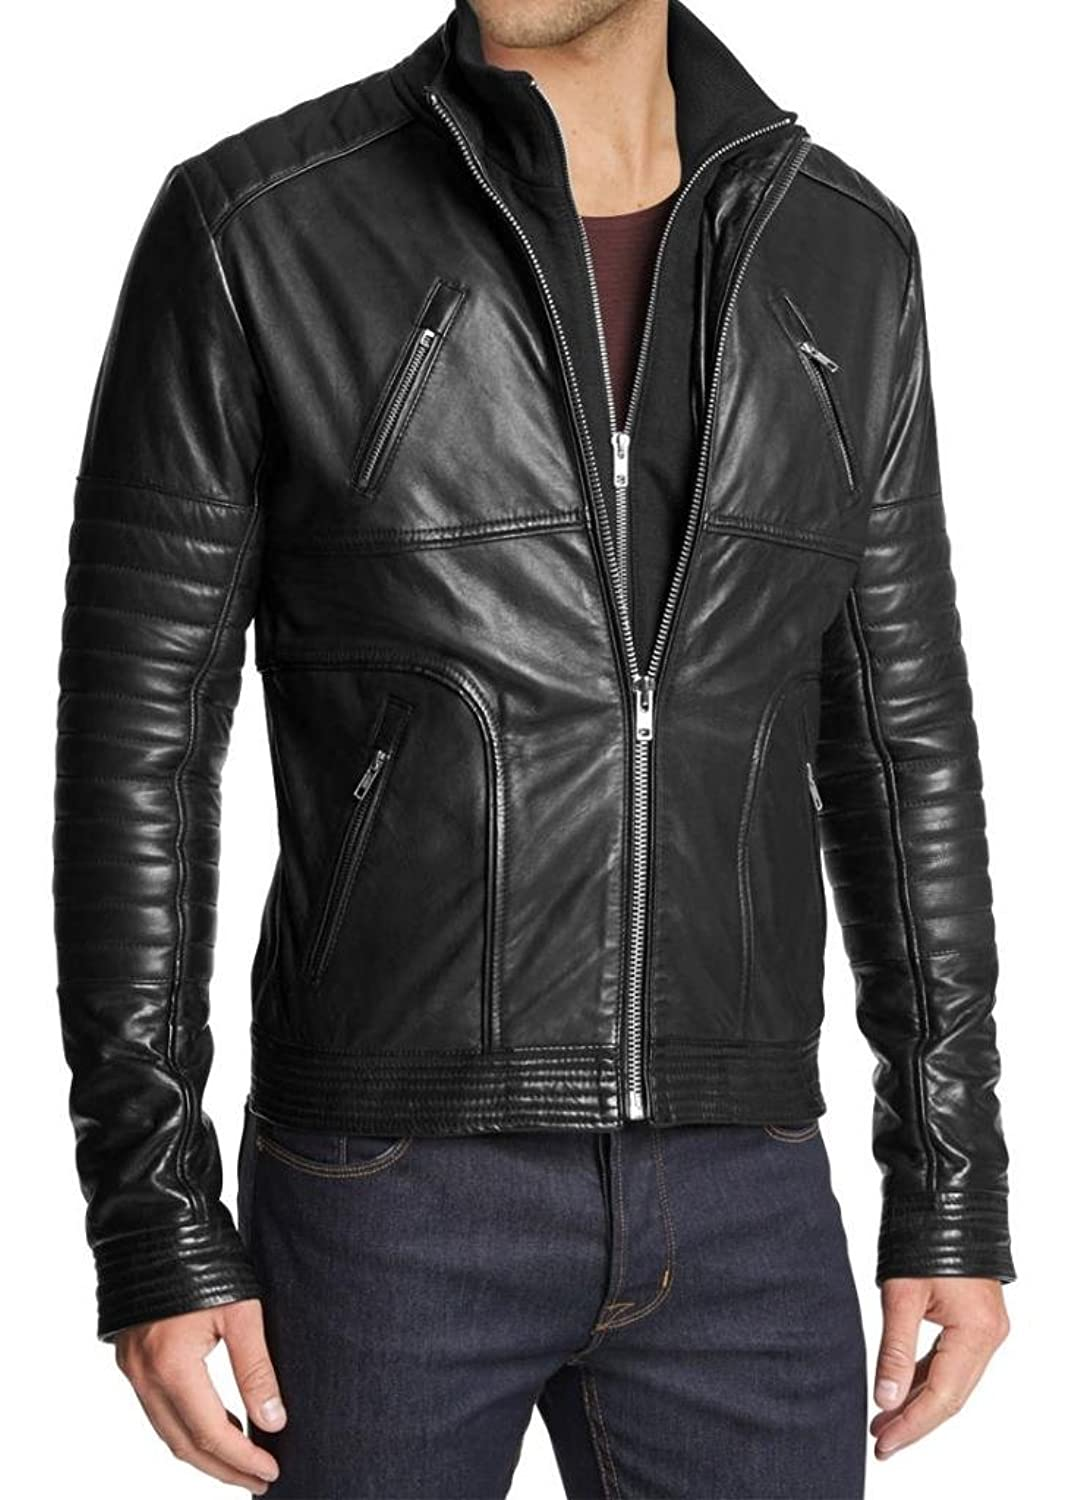 Men Leather Jacket Biker Motorcycle Coat Slim Fit Outwear Jackets AUK088